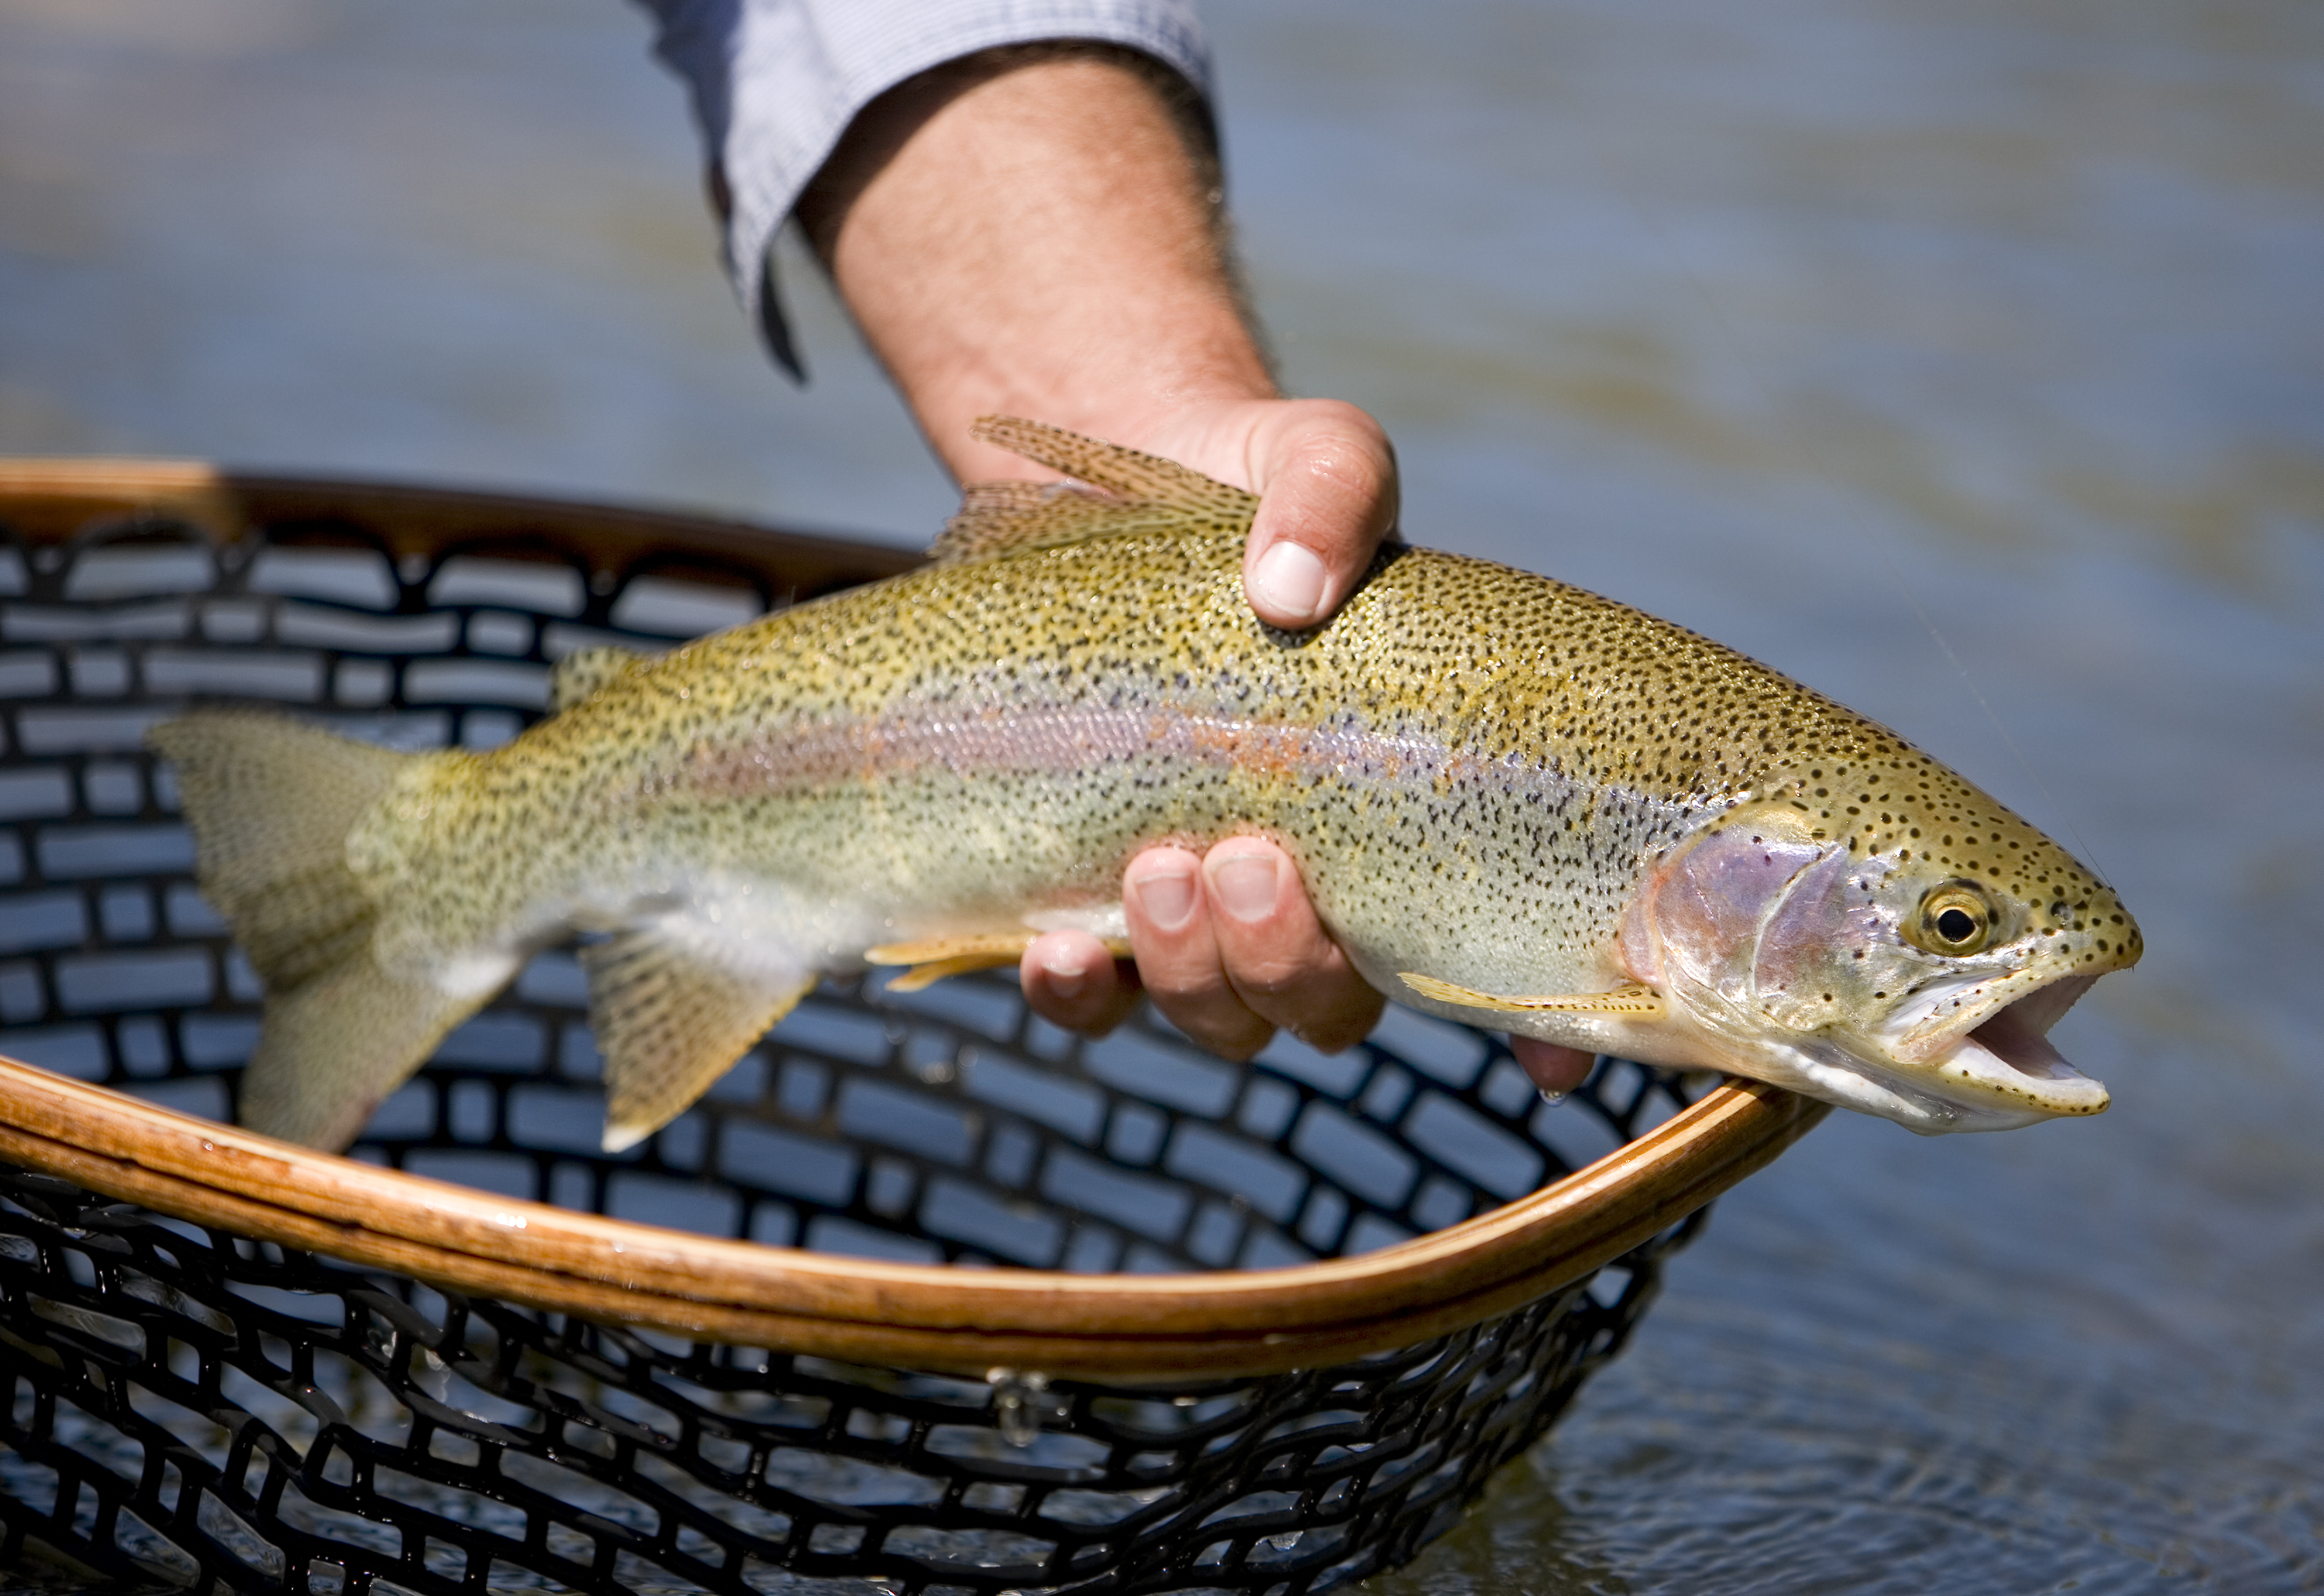 Michigan's Growing Threat: Fish Farming in the Great Lakes & Tributaries